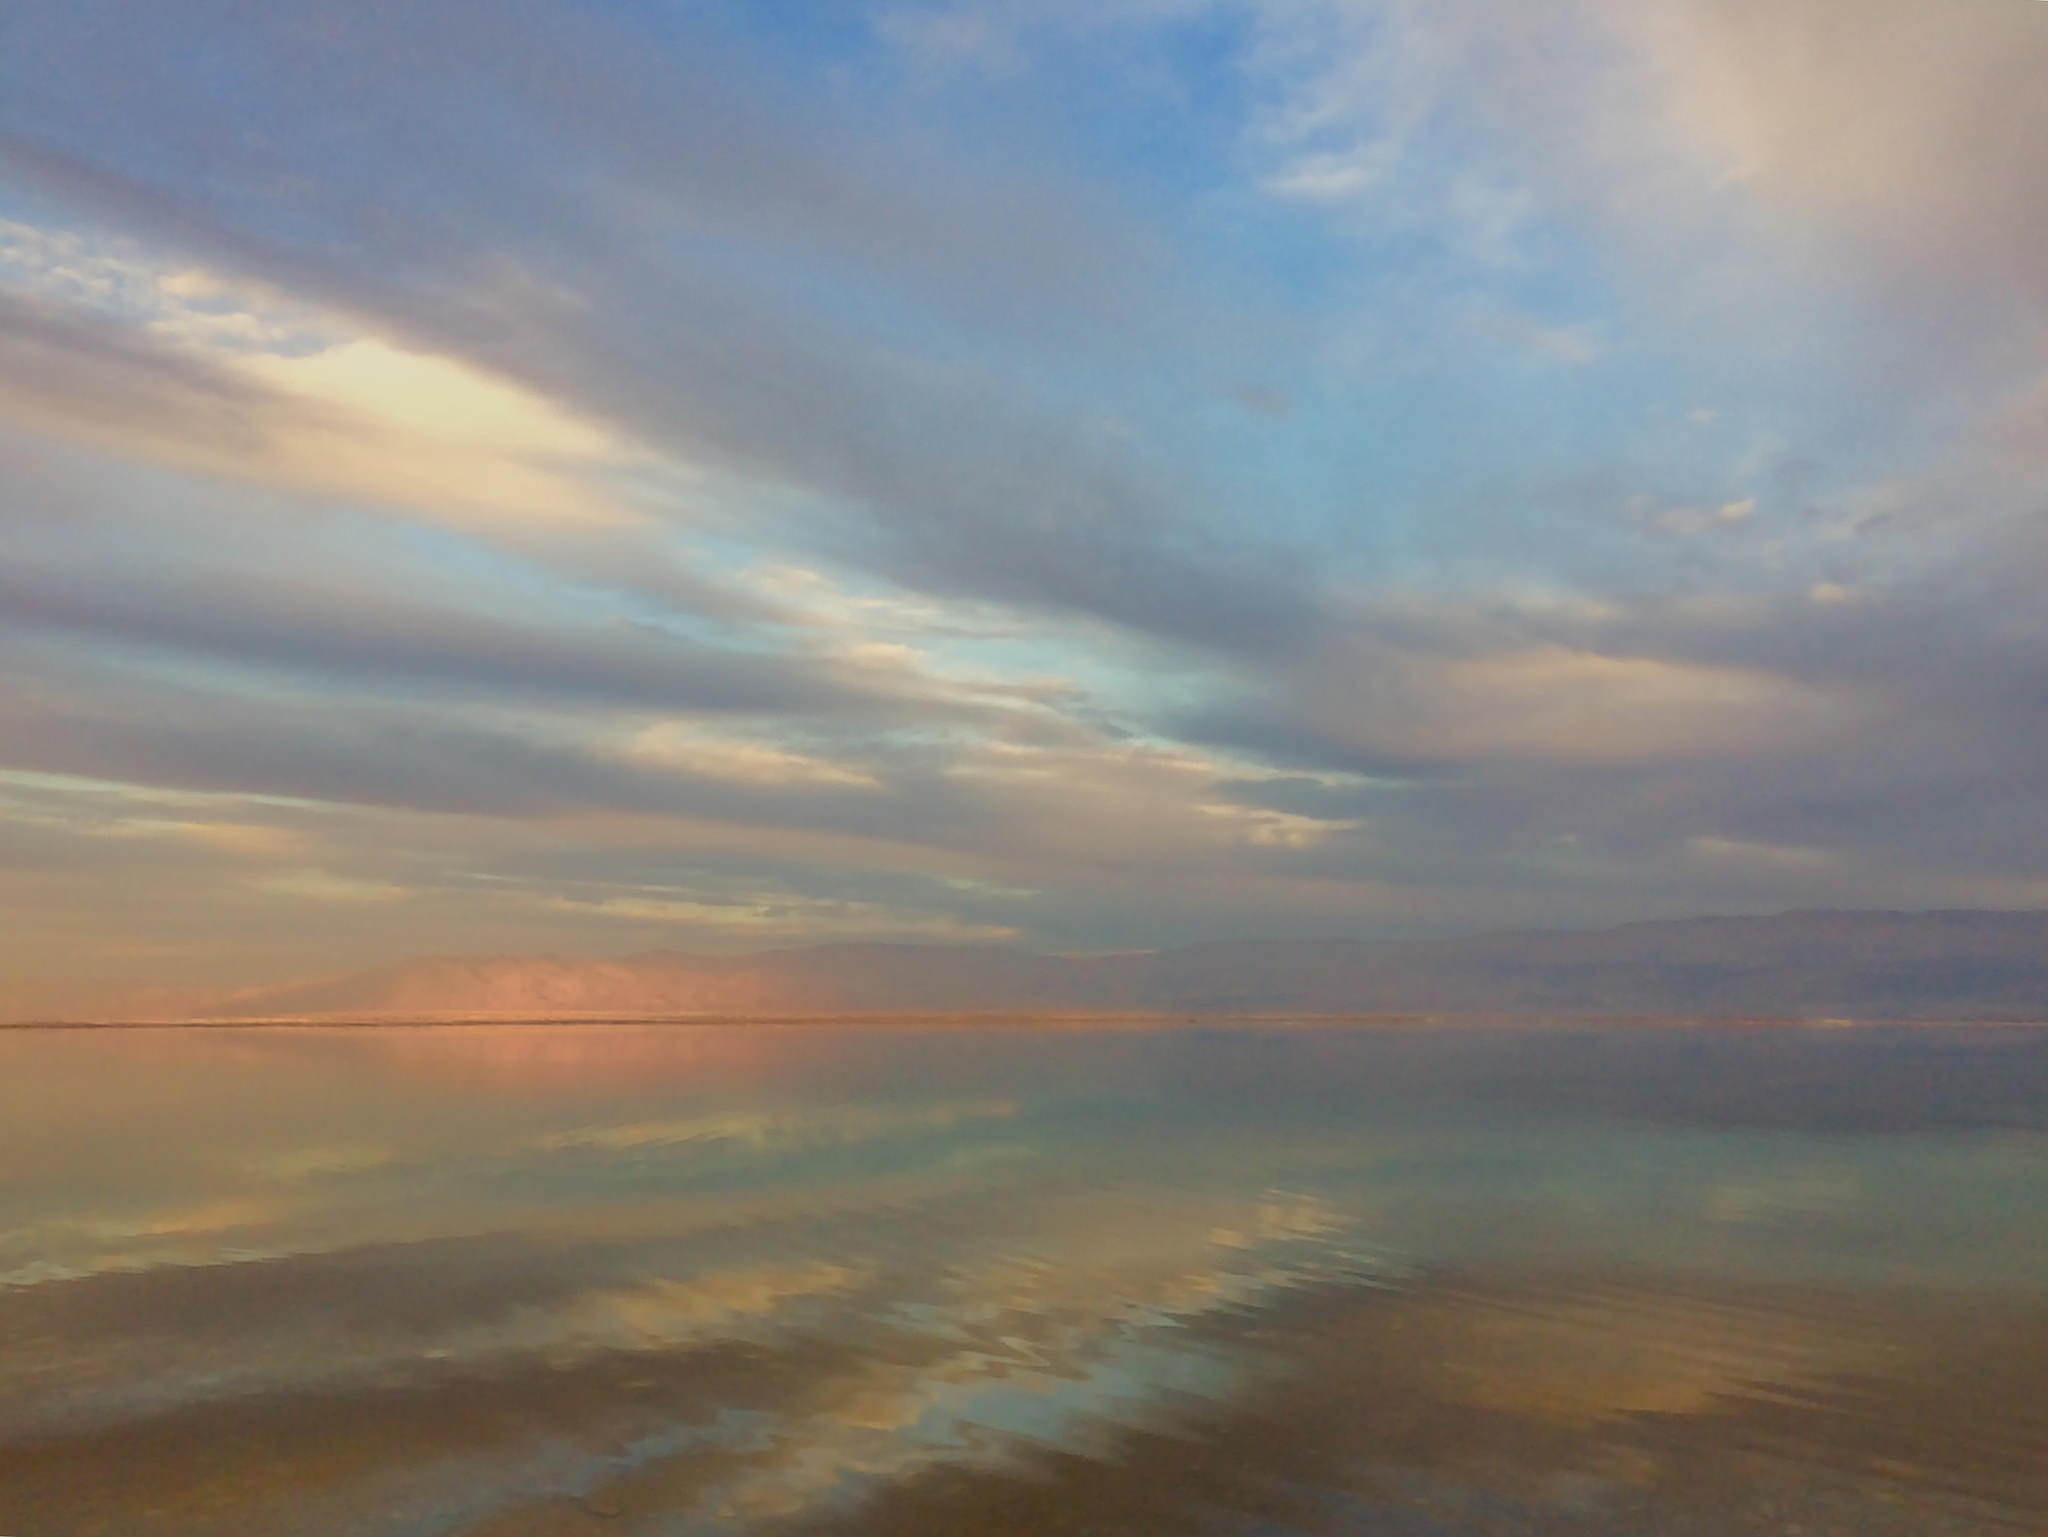 The Dead Sea near Ein Bokek in February 2017